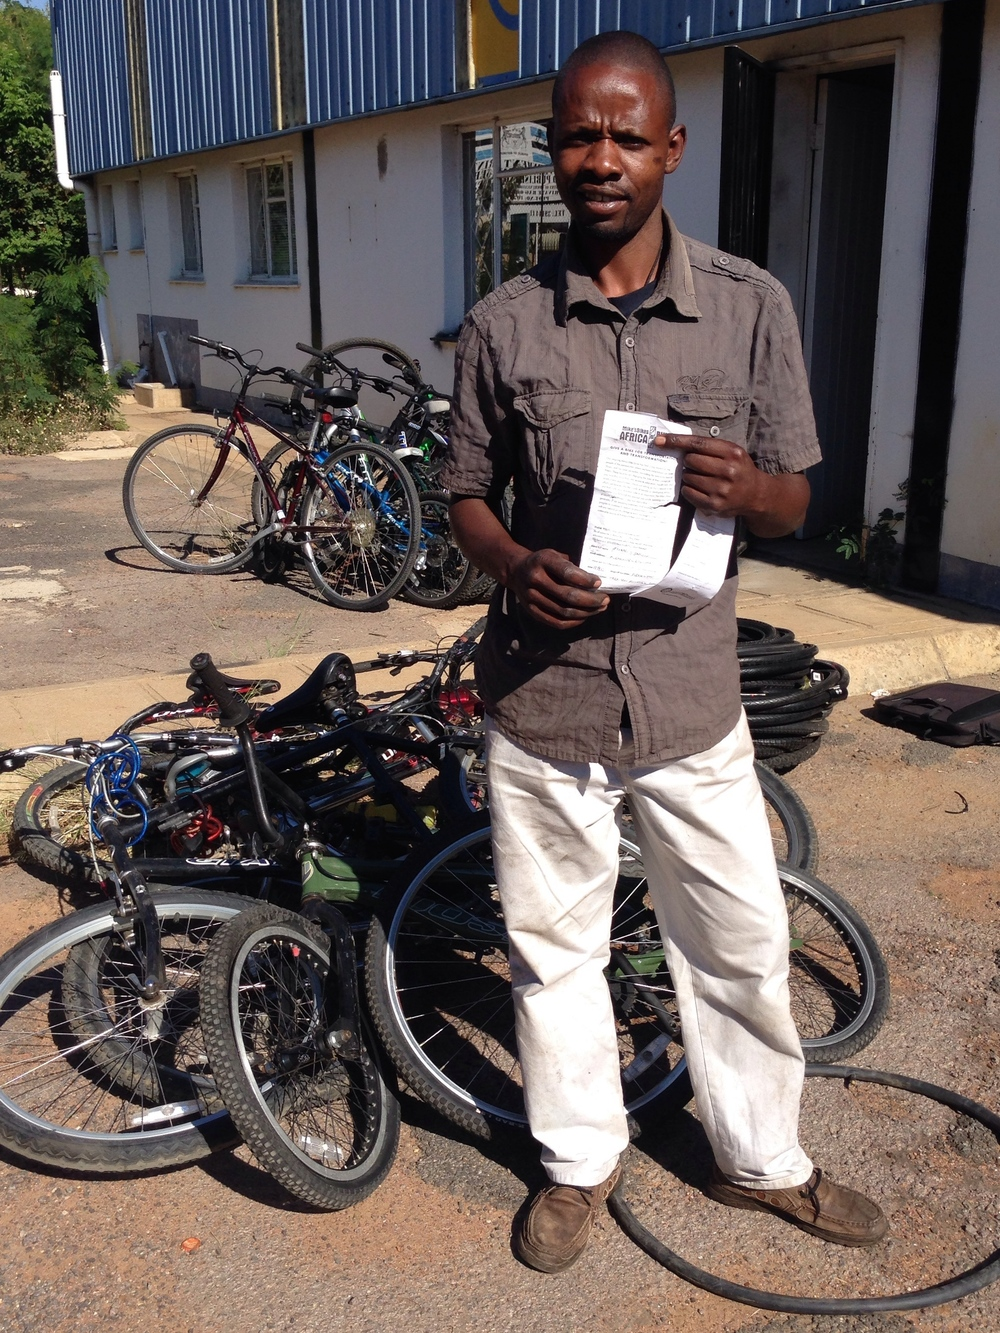 Enoch with his new stock and slips from our bike donors in California.